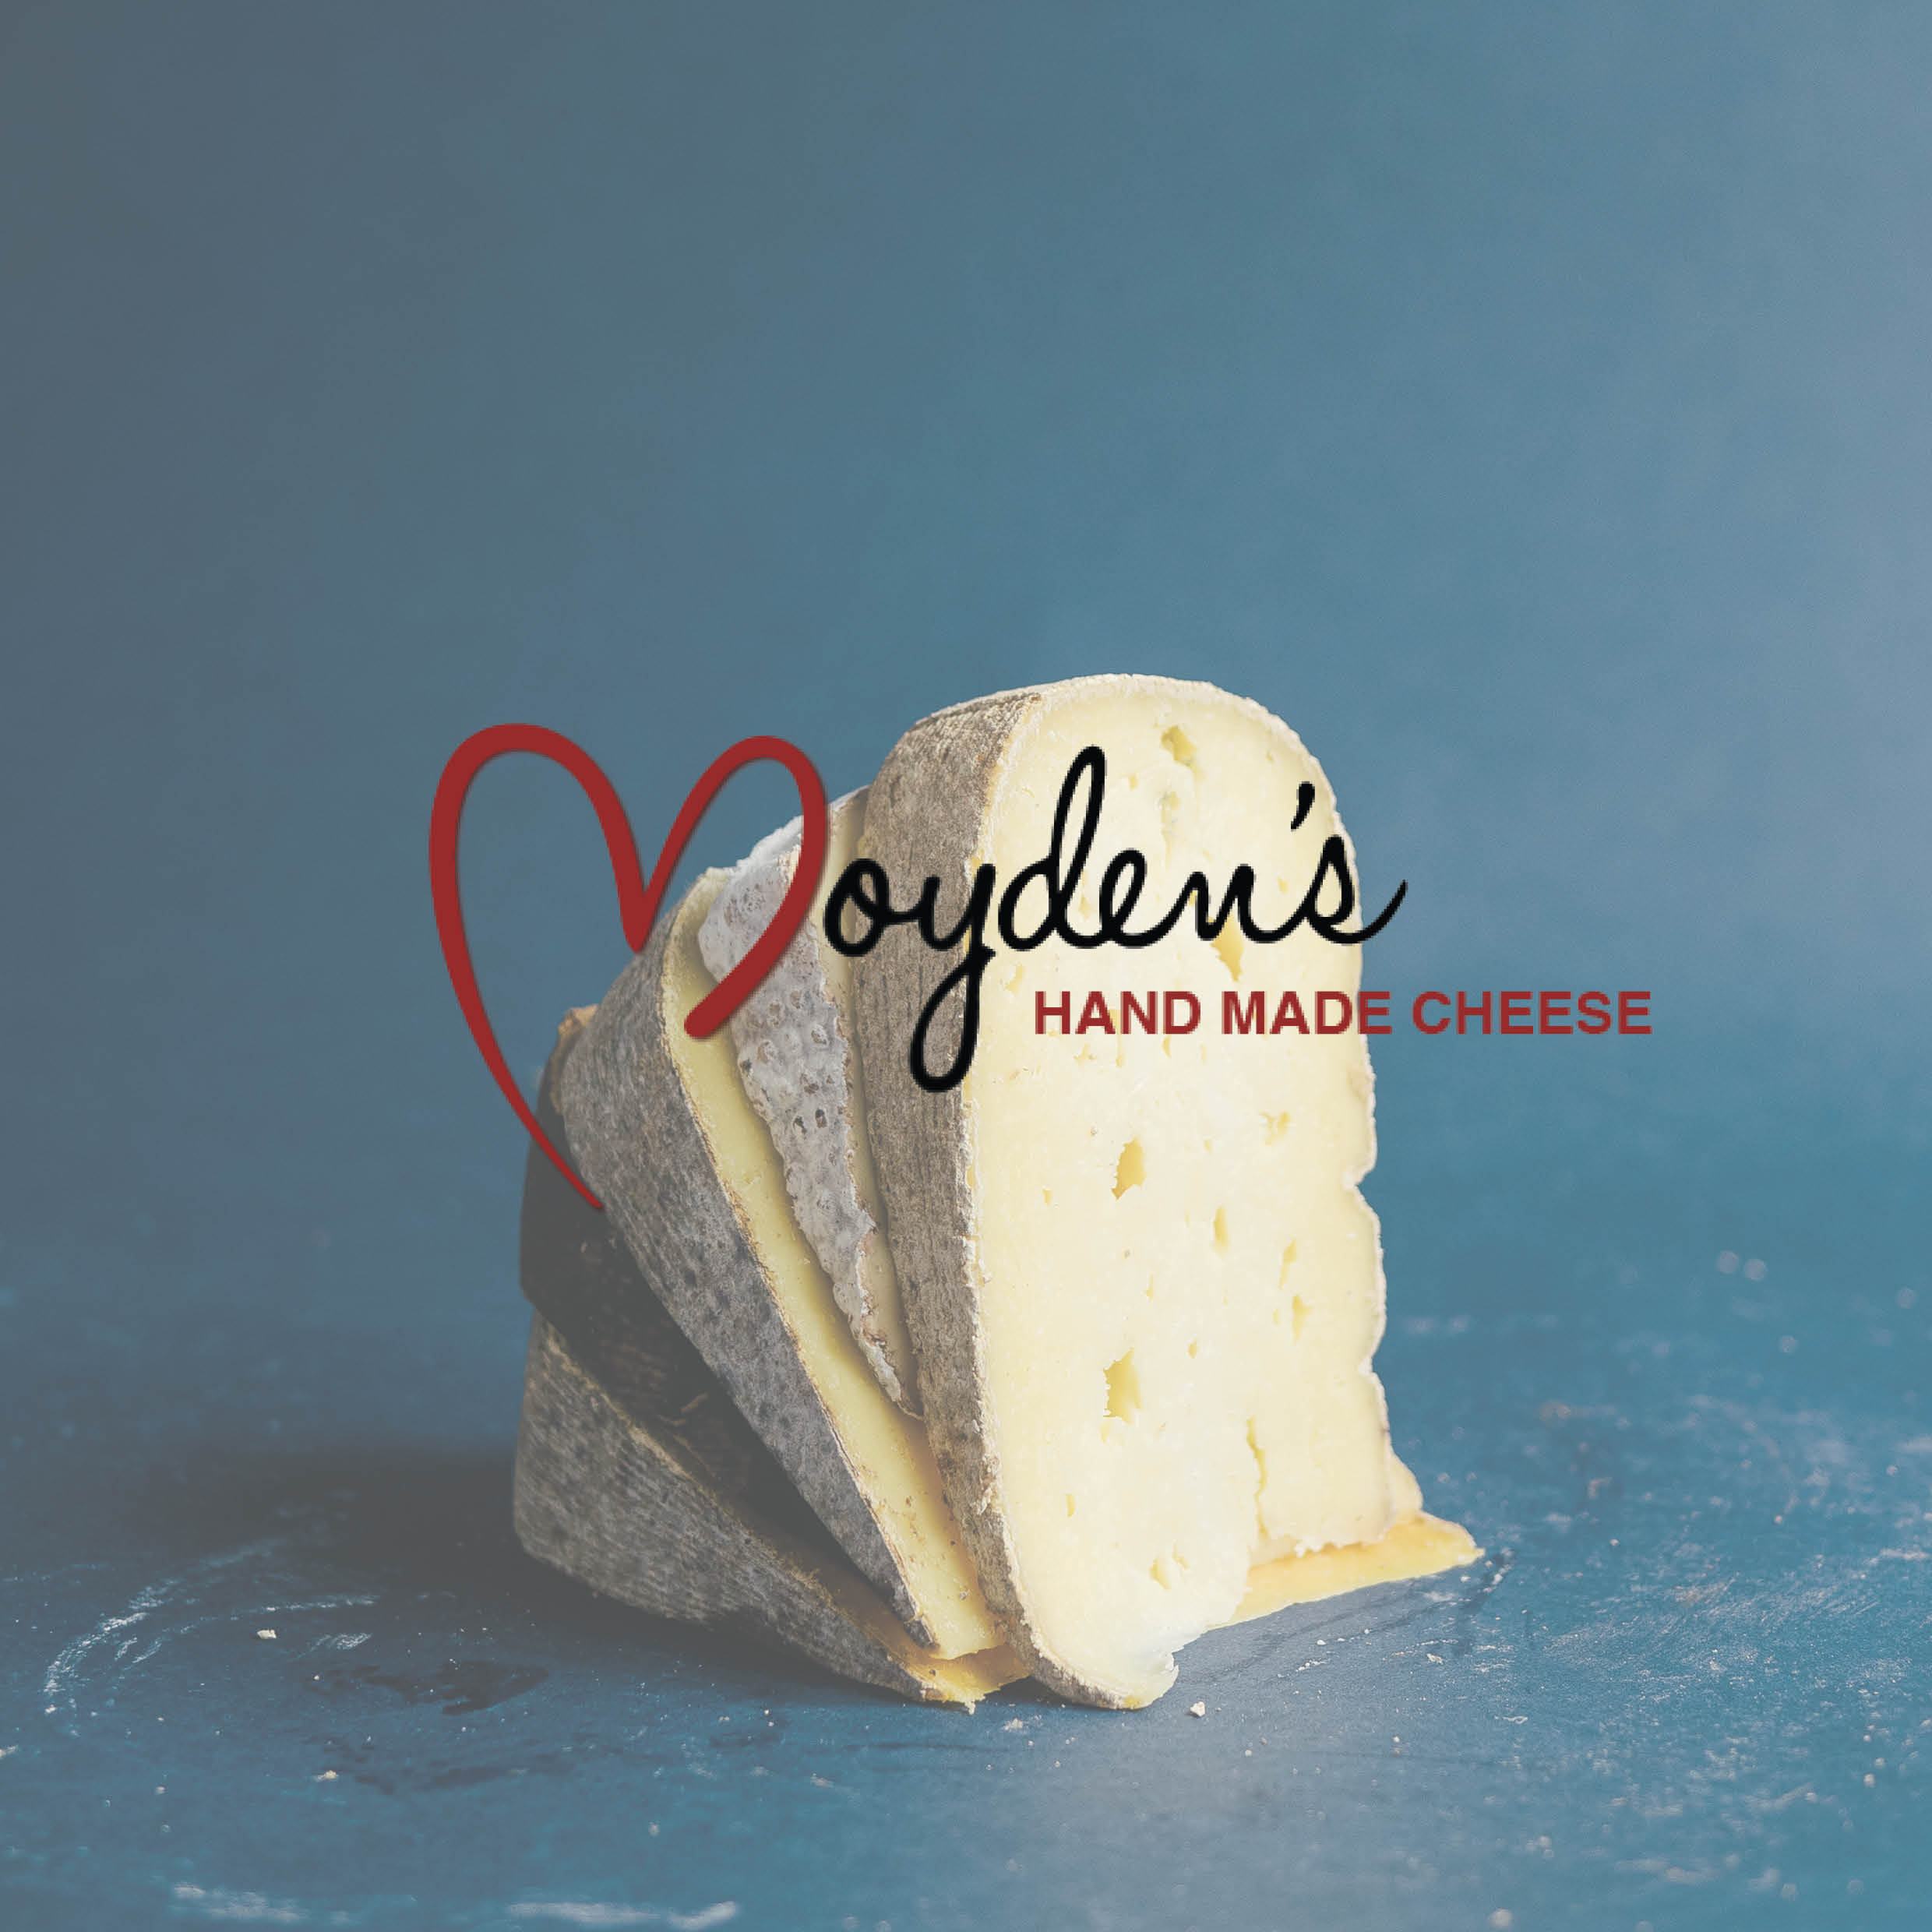 It is an absolute pleasure to work with Moydens Handmade Cheese to do their social media platforms of Instagram and Facebook. We have worked with them to get an understanding of their language and brand, created graphics, and work closely to ensure the pages feature real content from their events and activities.